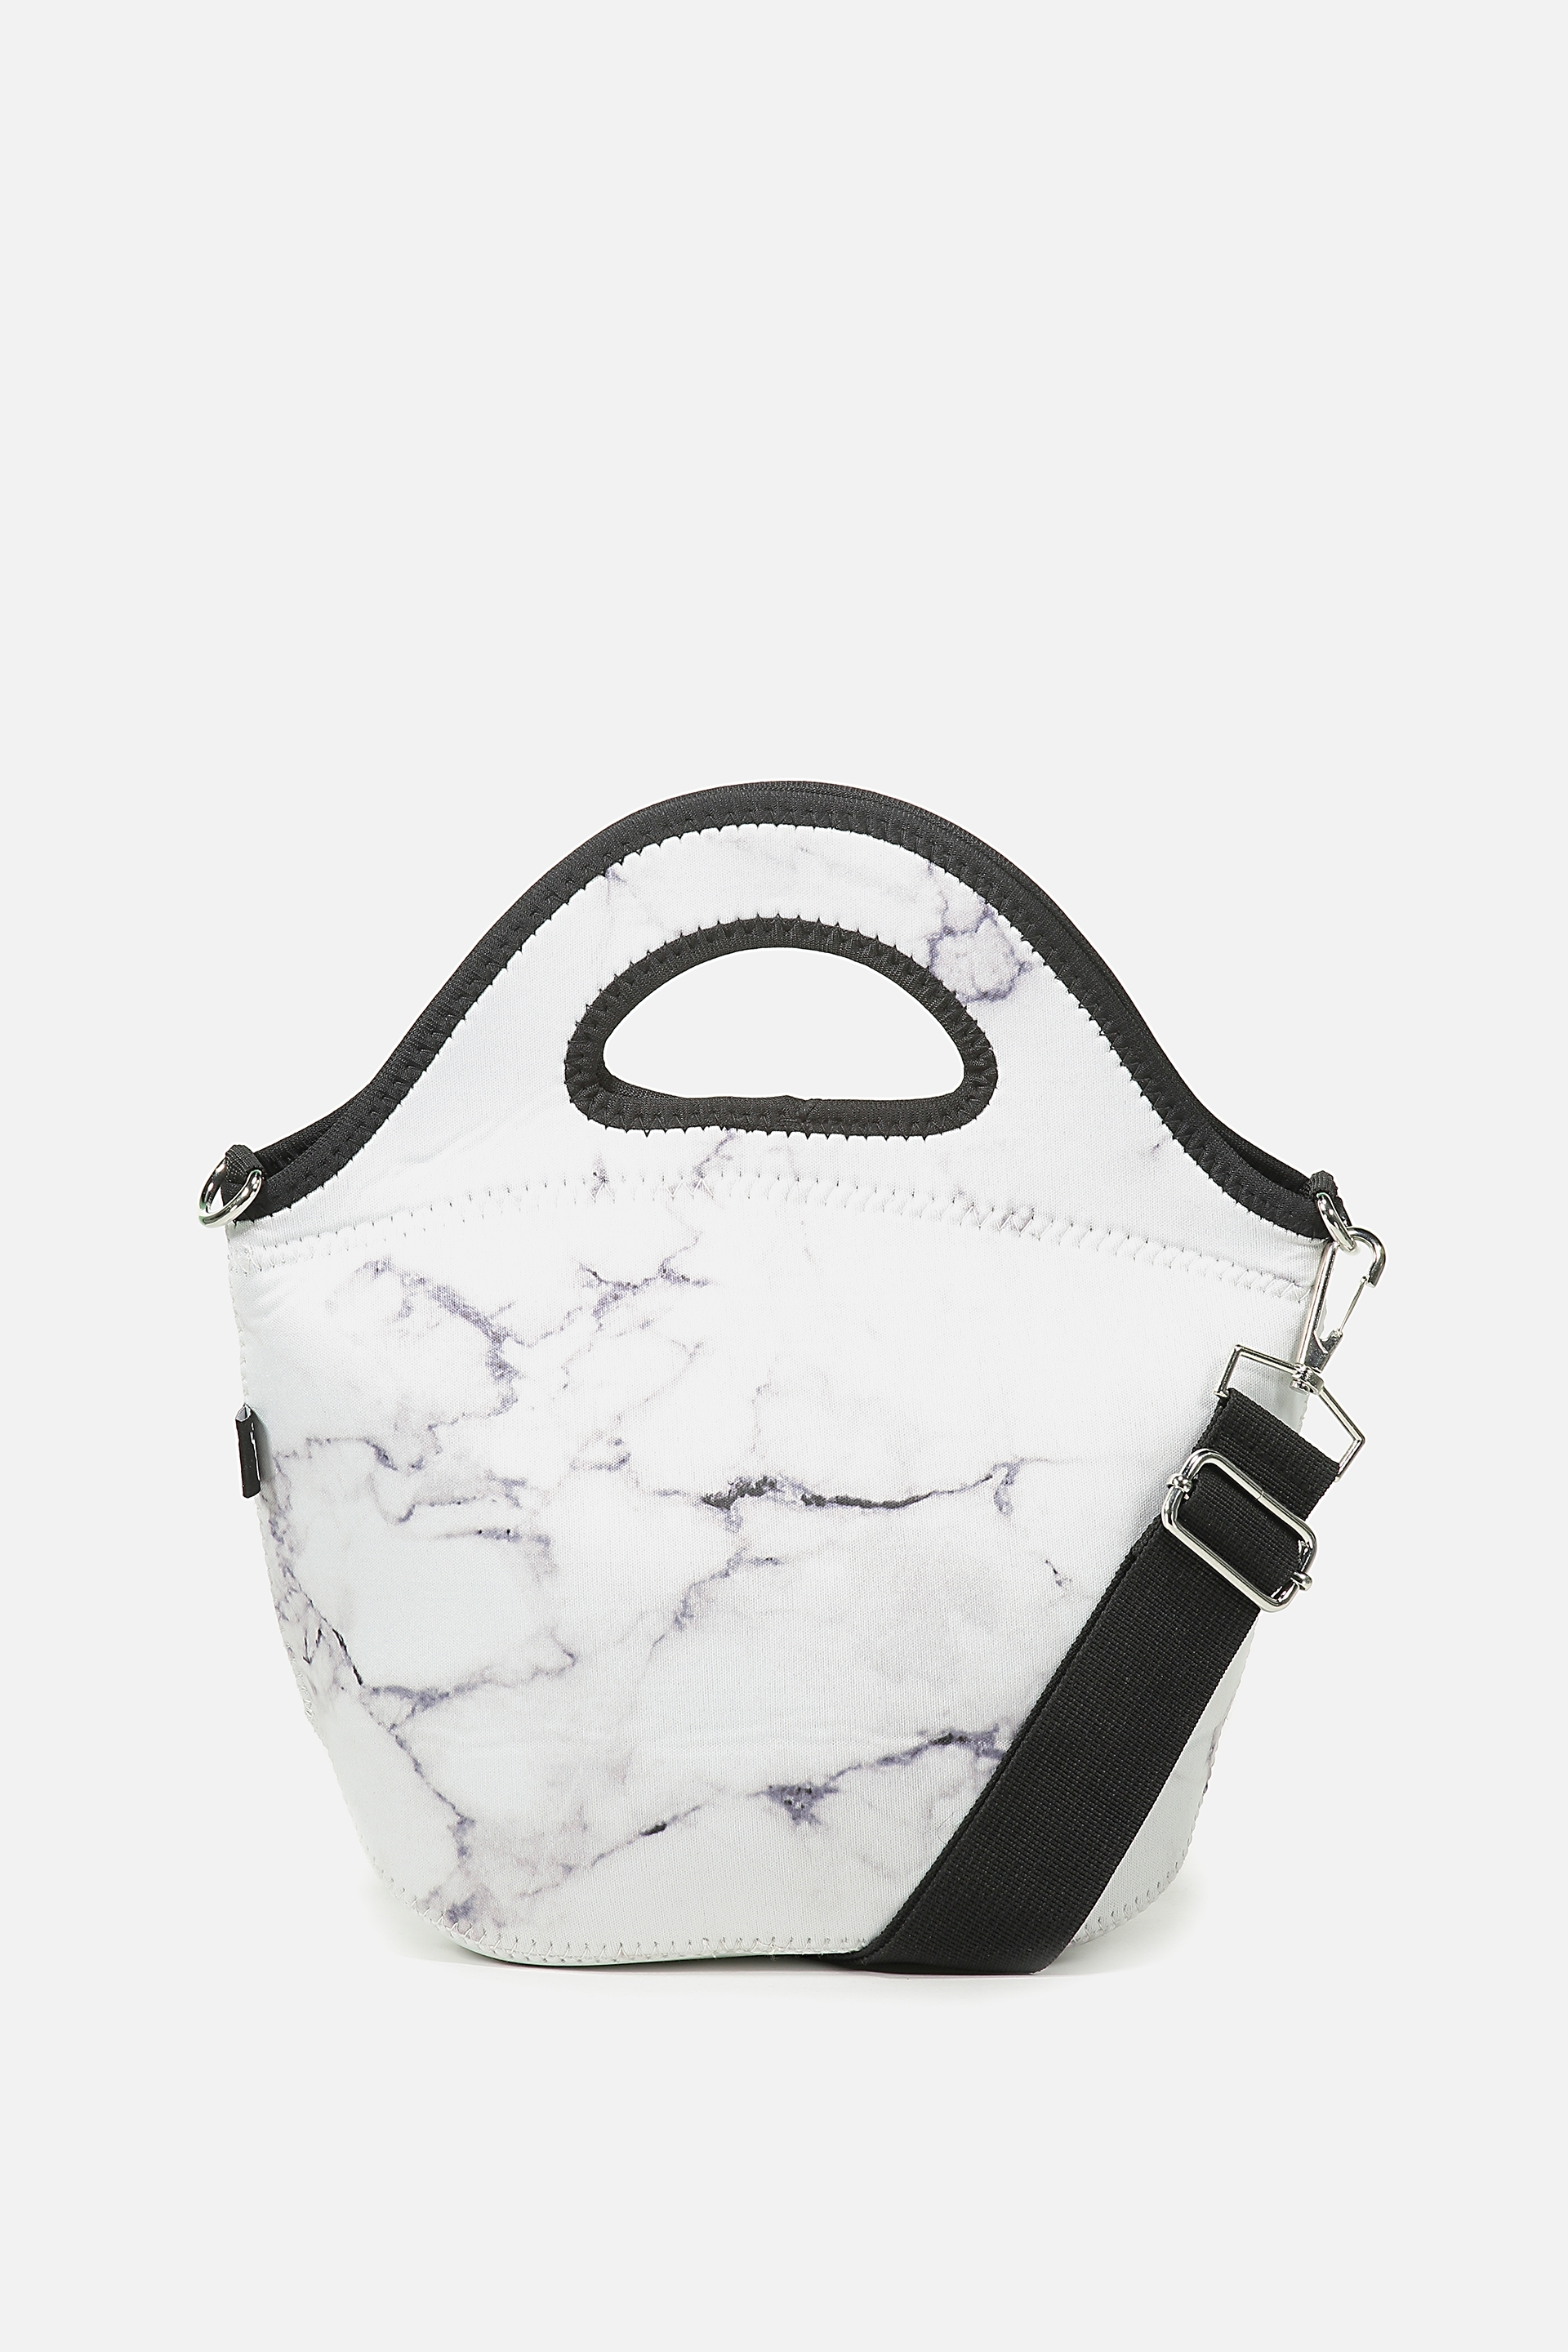 Typo - Neoprene Lunch Tote With Strap - Marble 9352855389177